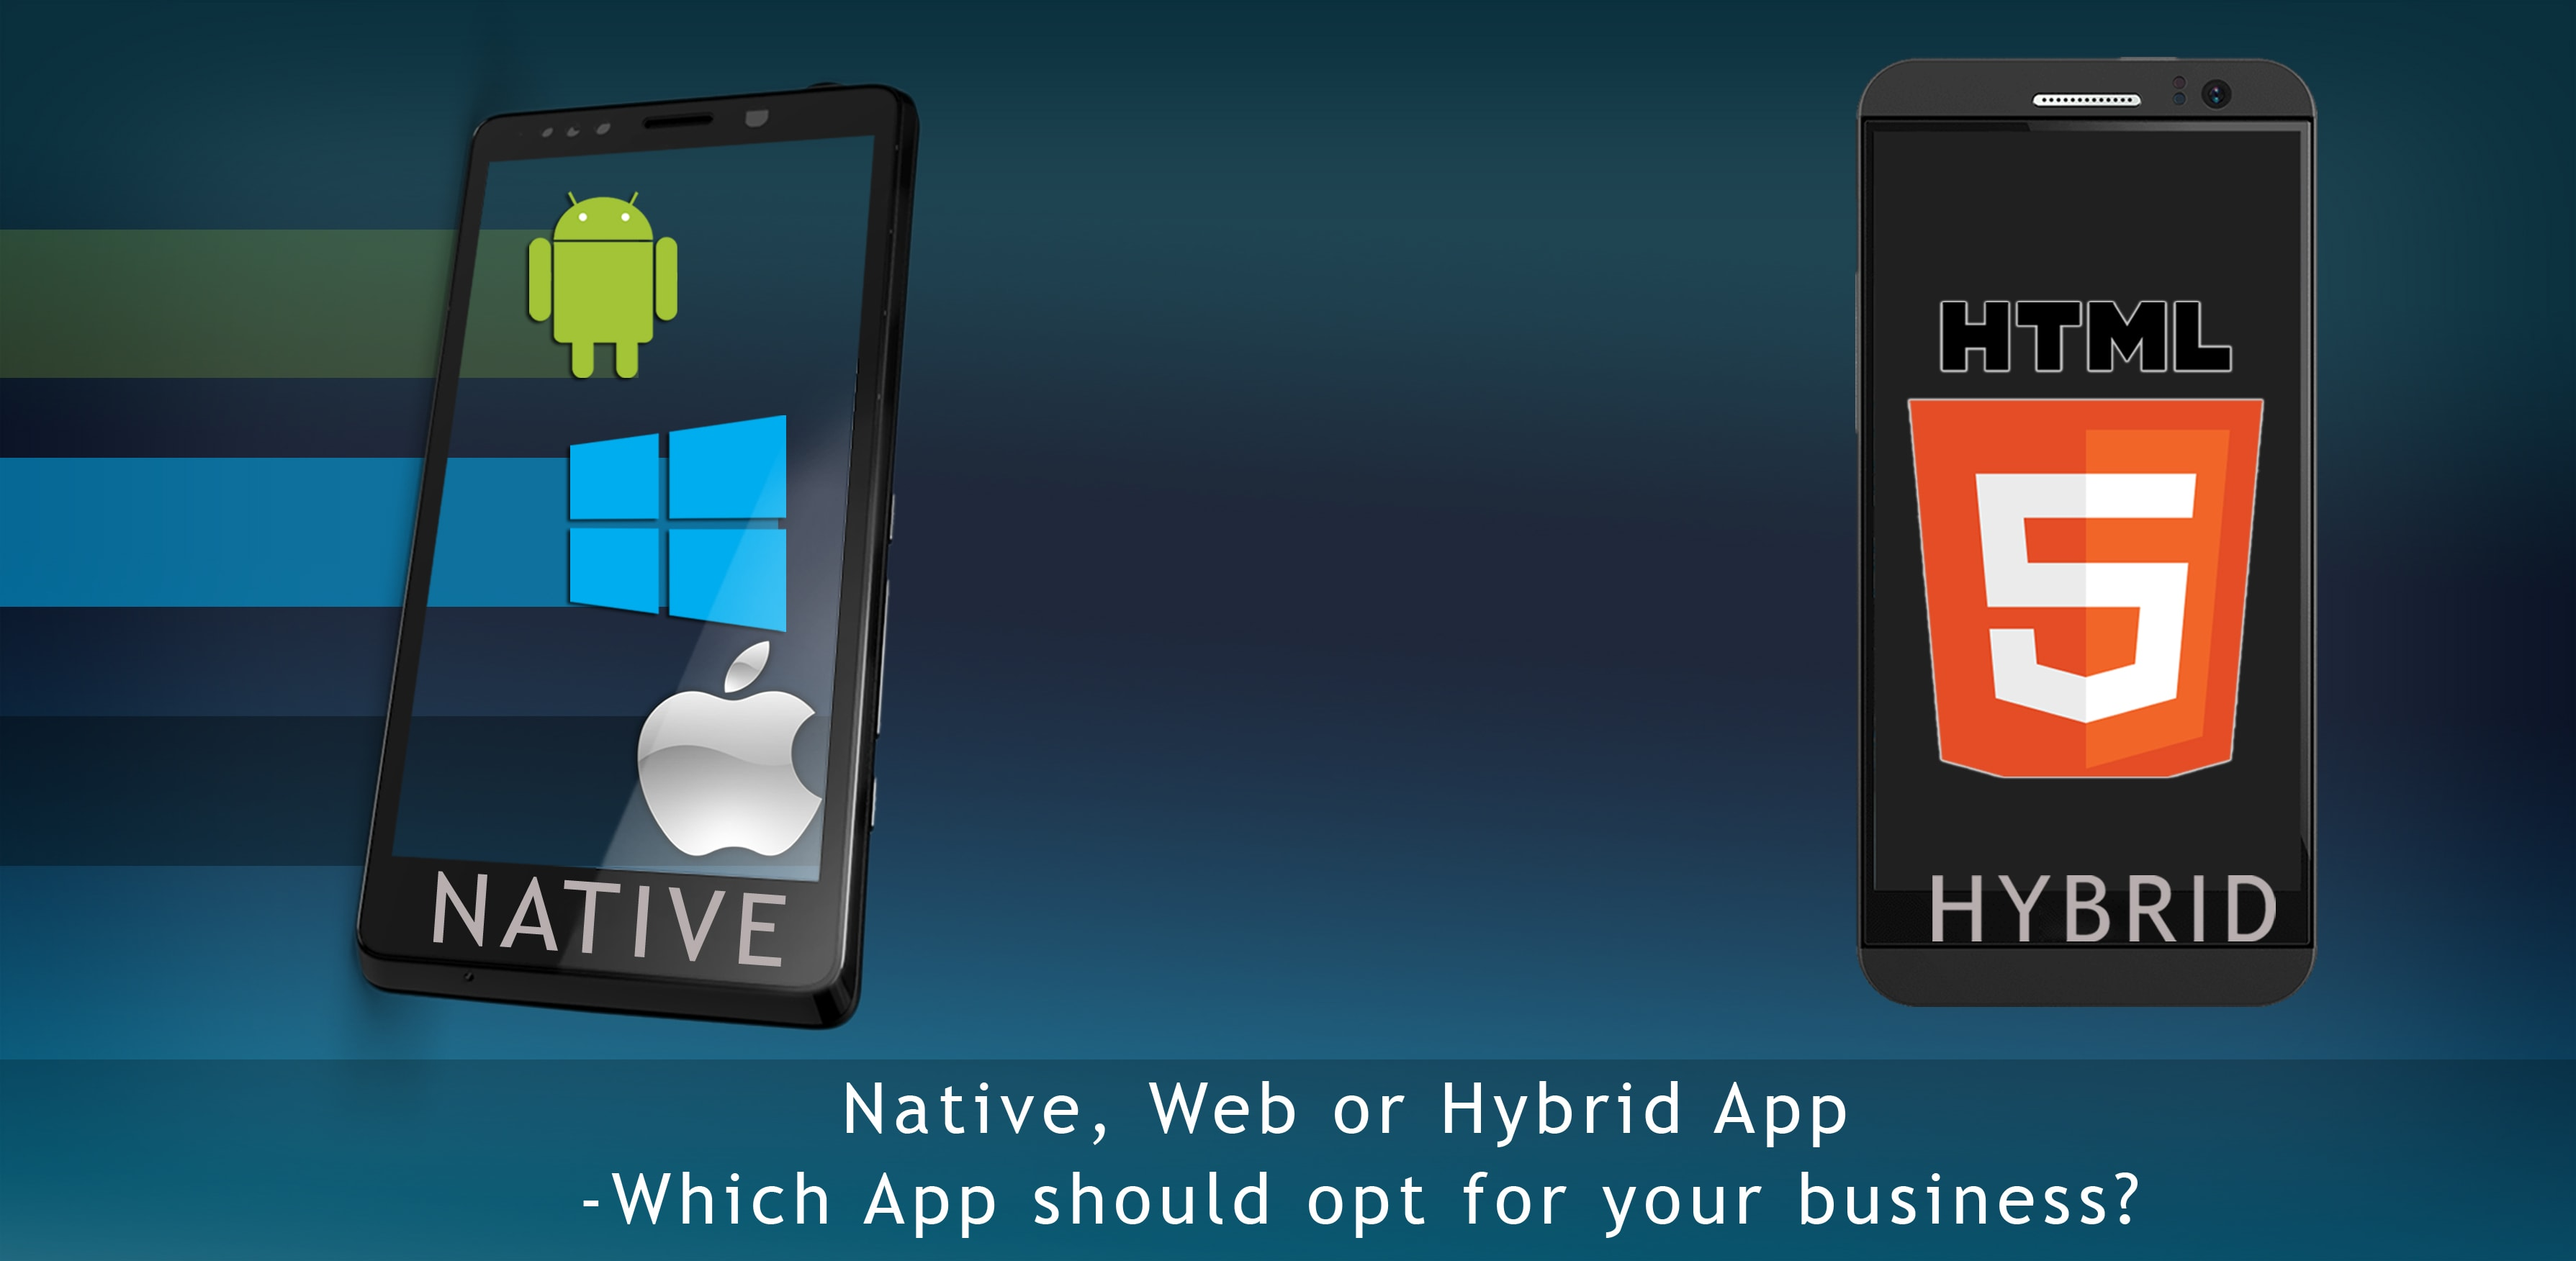 Native, Web or Hybrid App -Which App should opt for your business?